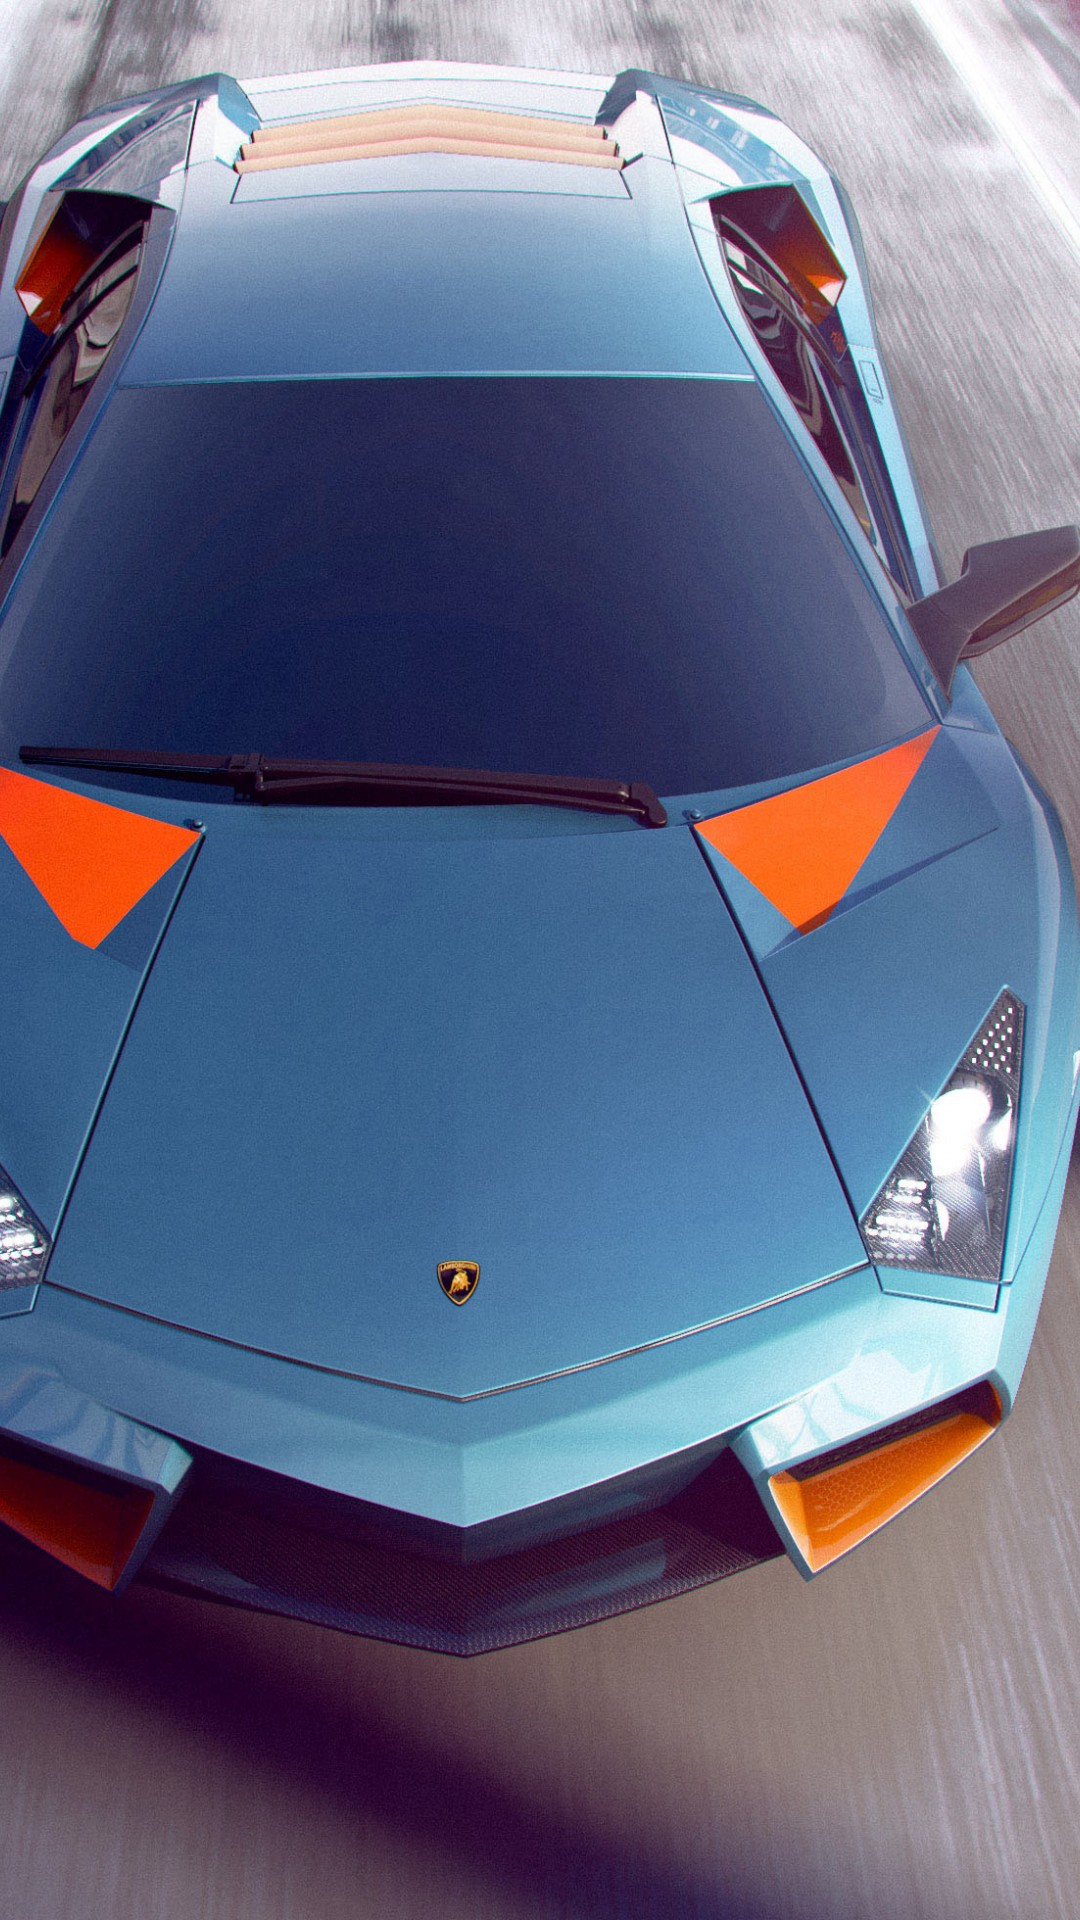 Download Free Lamborghini CGI Car Full Hd Wallpaper for Desktop and Mobiles